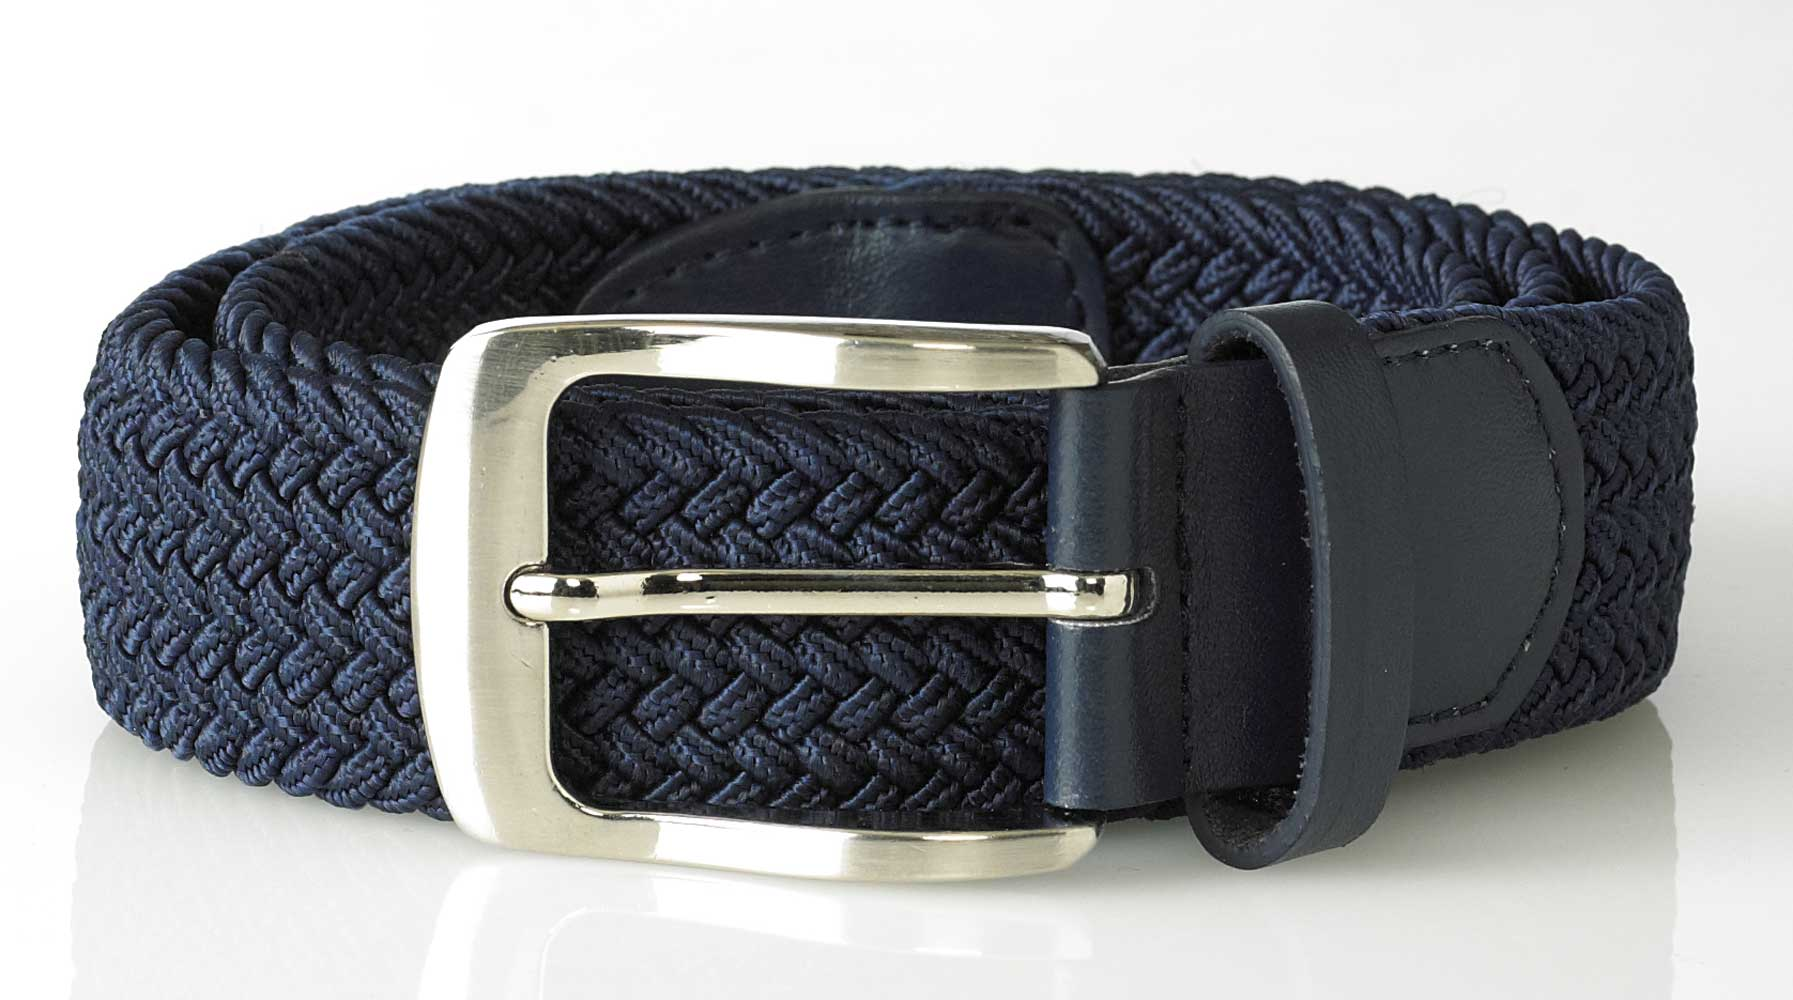 DUKE LONDON METAL TIP END BELT 3.0CM WIDTH IN WAIST 32 TO 42 INCHES